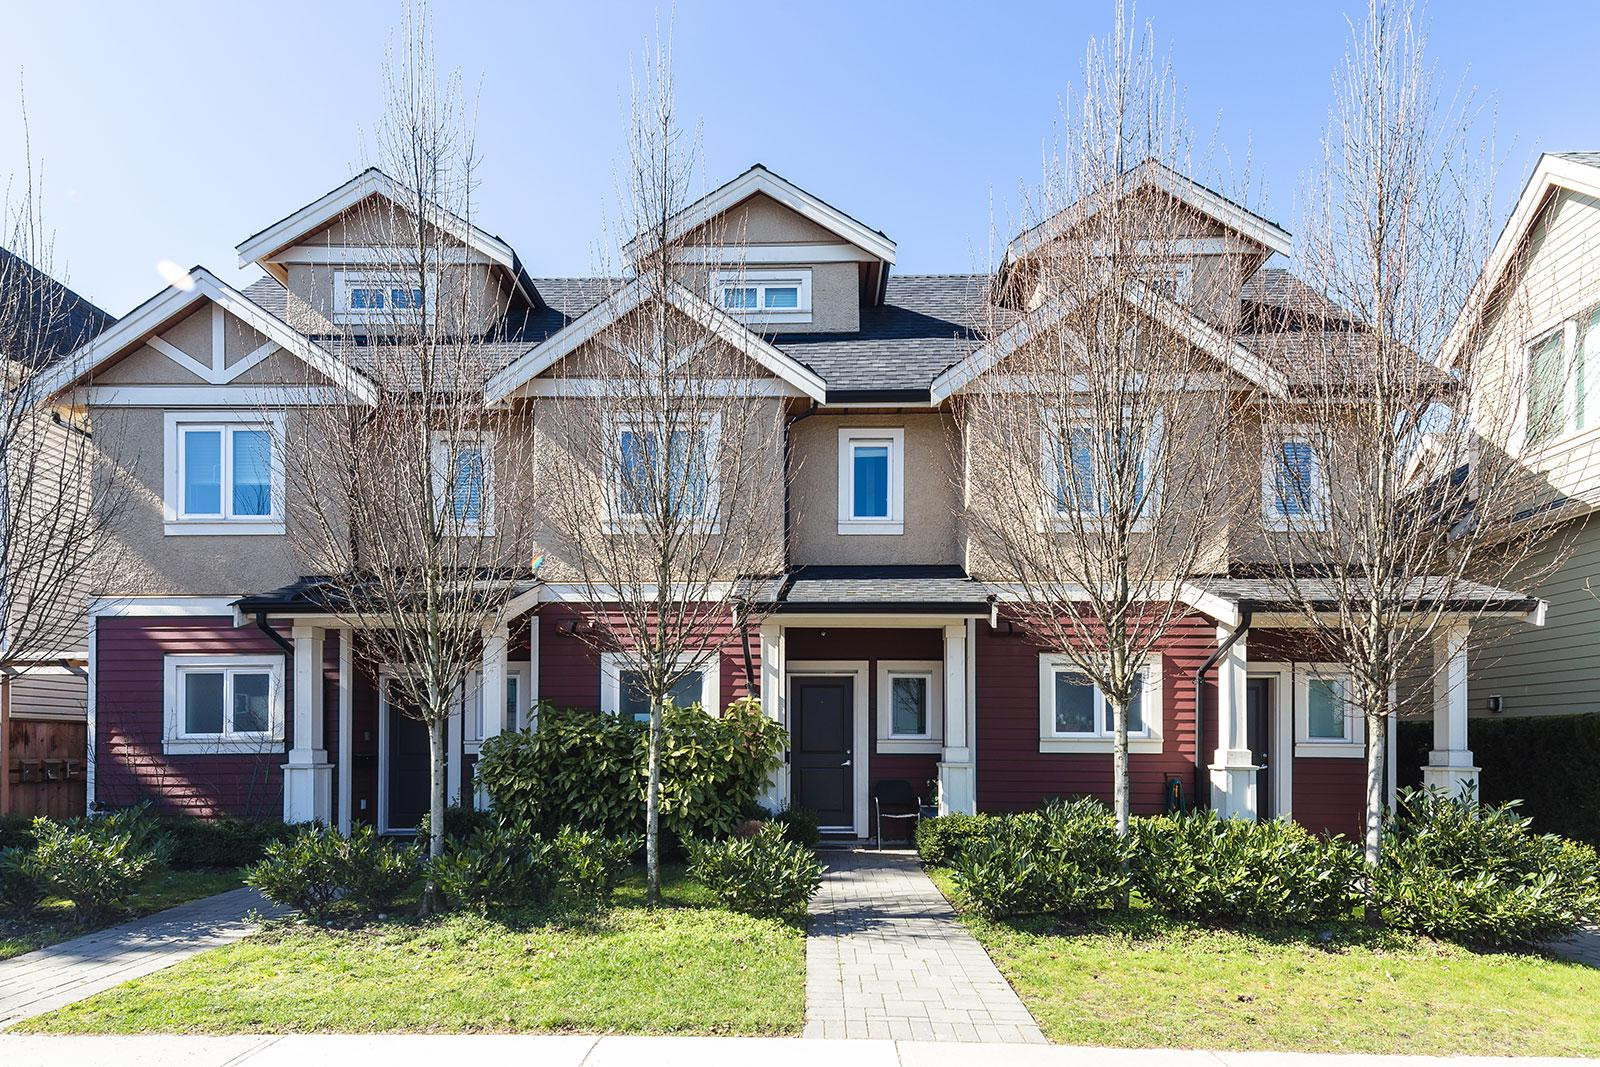 Six Homes at 4331 Knight St, Vancouver 1